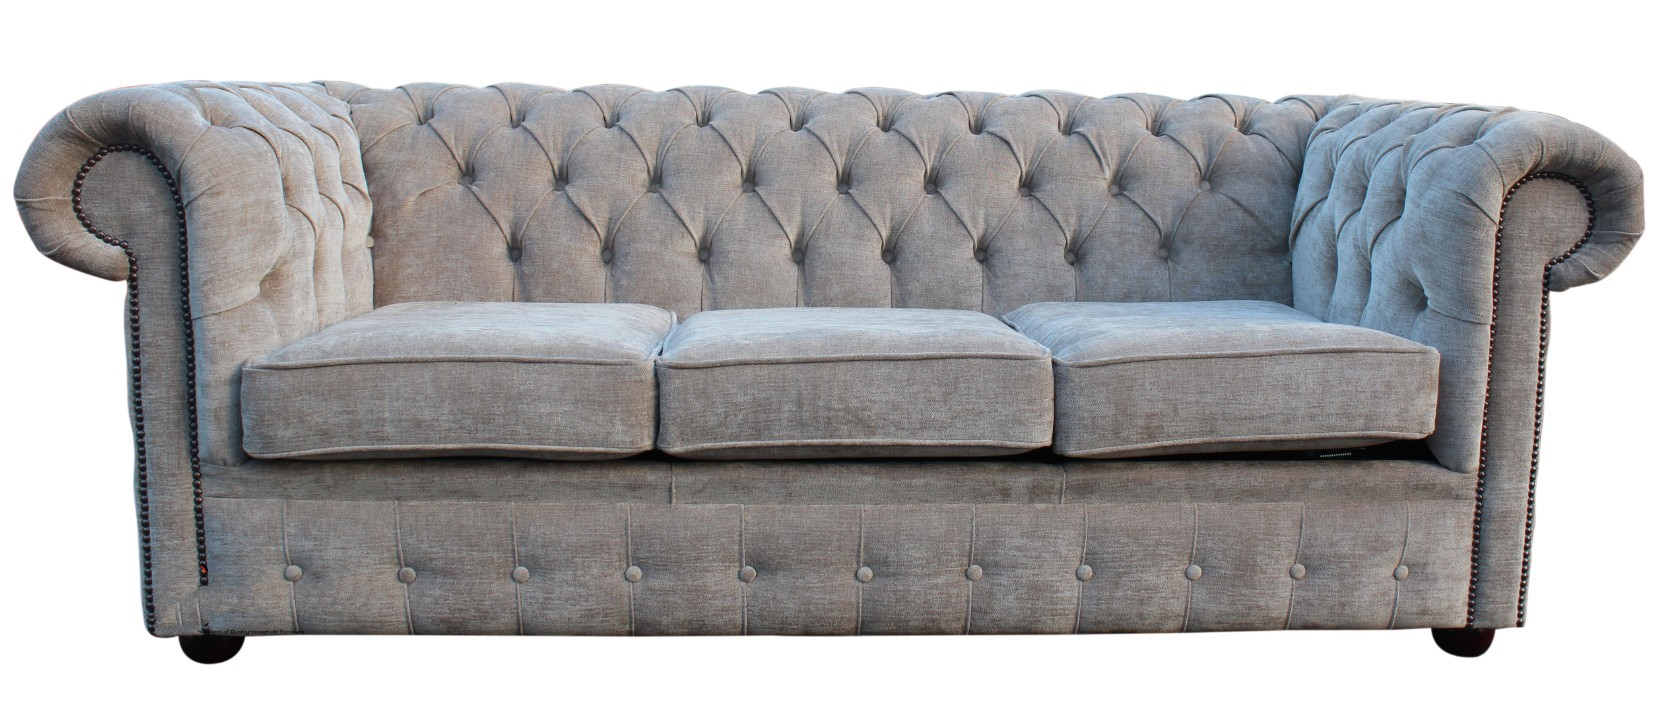 fabric chesterfield sofas uk images 1693 crompton fabric chesterfield Home Design Ideas Home